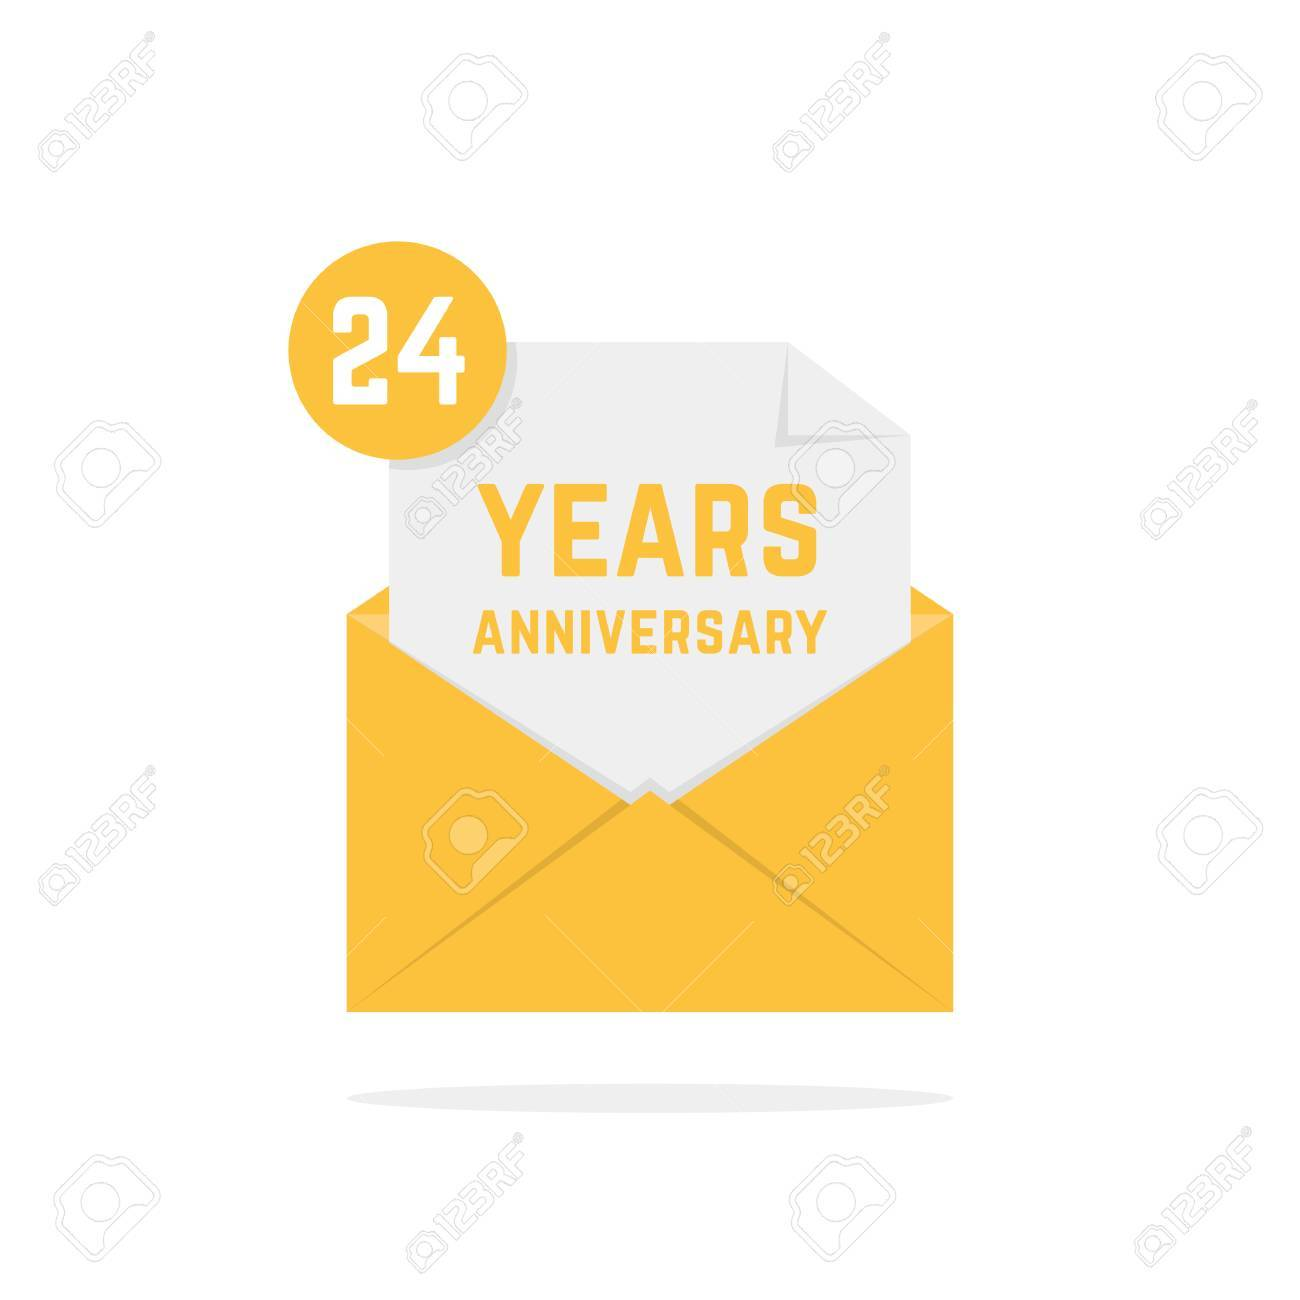 24 years anniversary icon in open letter